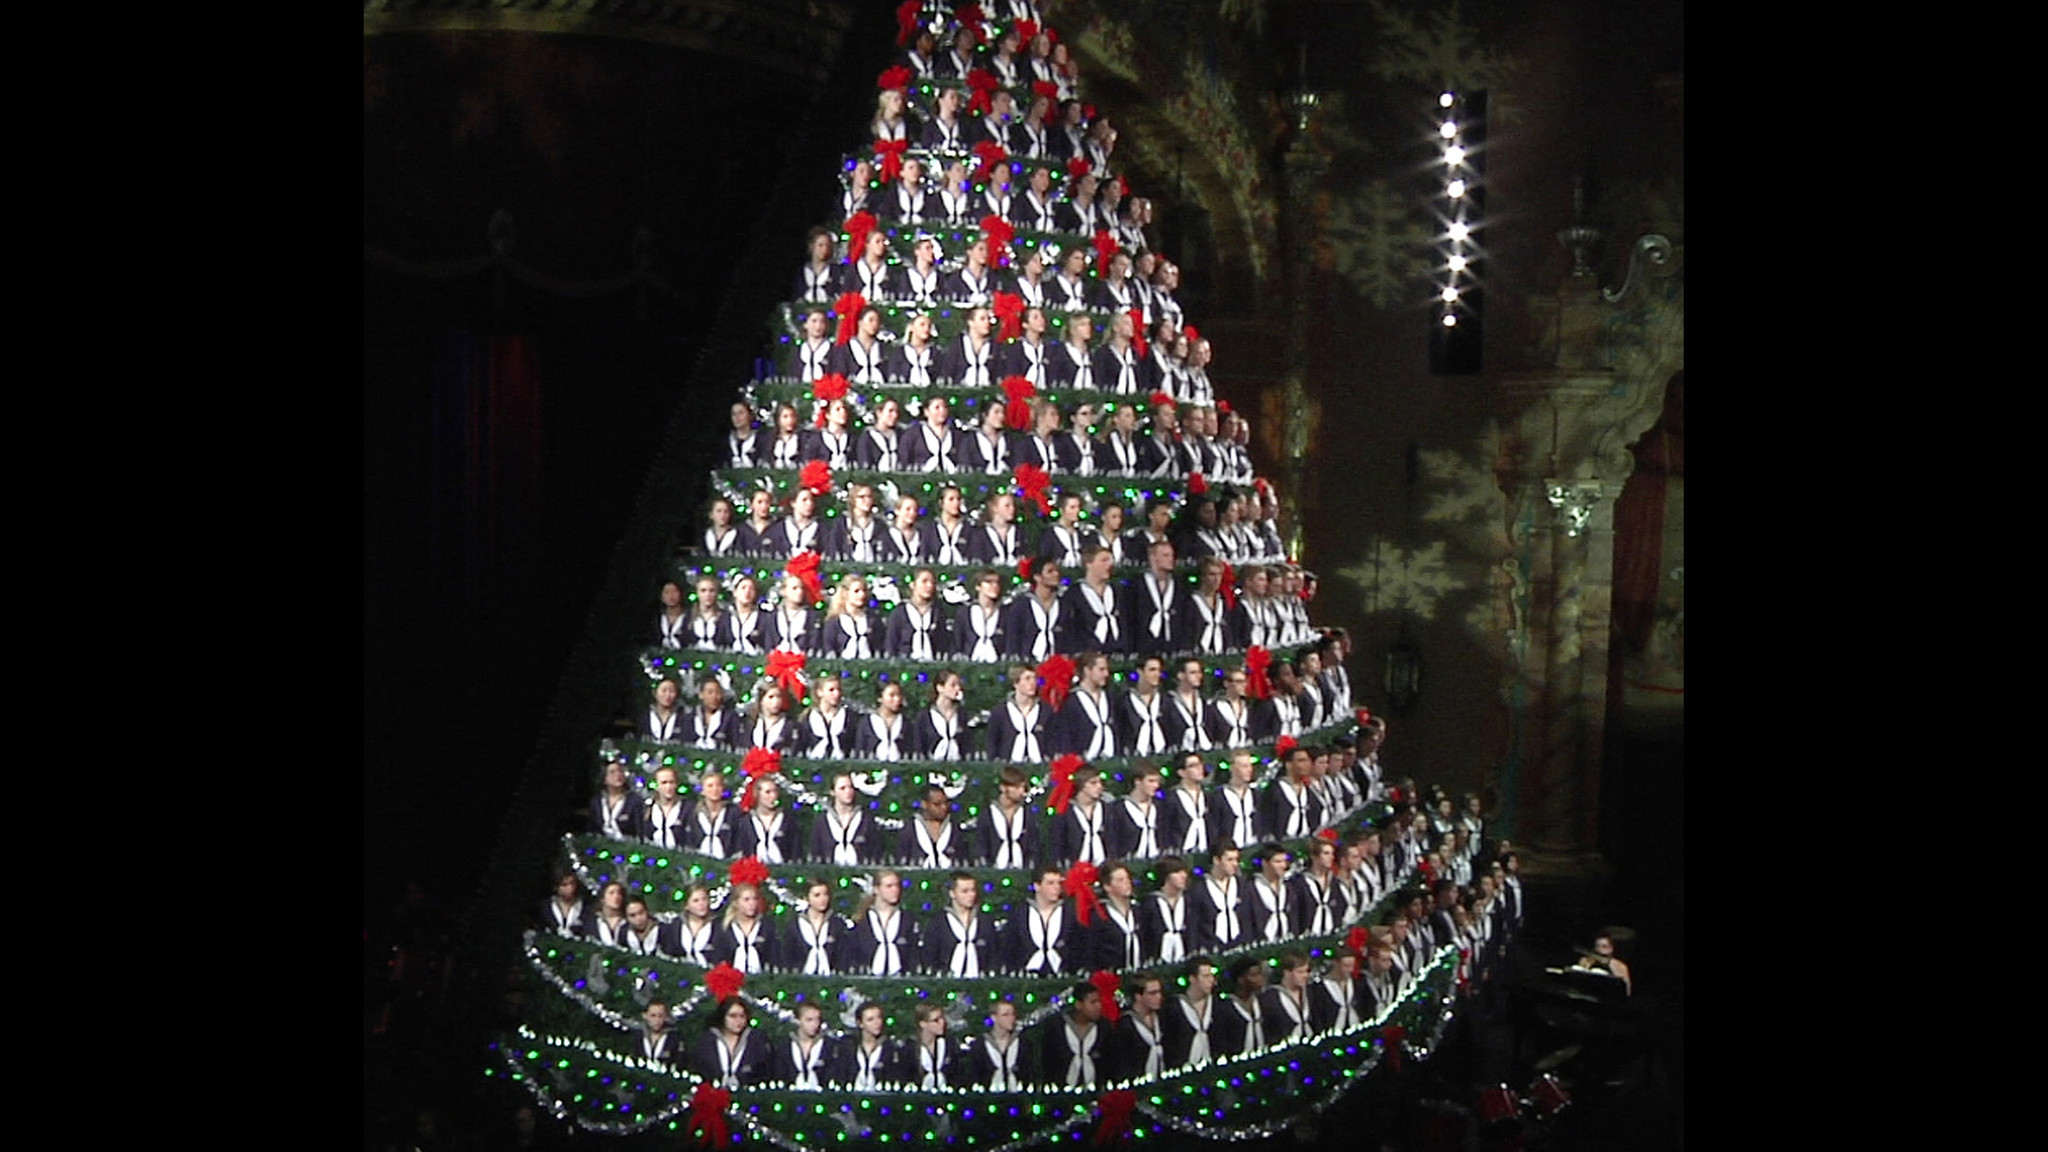 christmas trees made of beer kegs and people photos of 15 bizarre holiday trees around the world la times - Unusual Christmas Trees